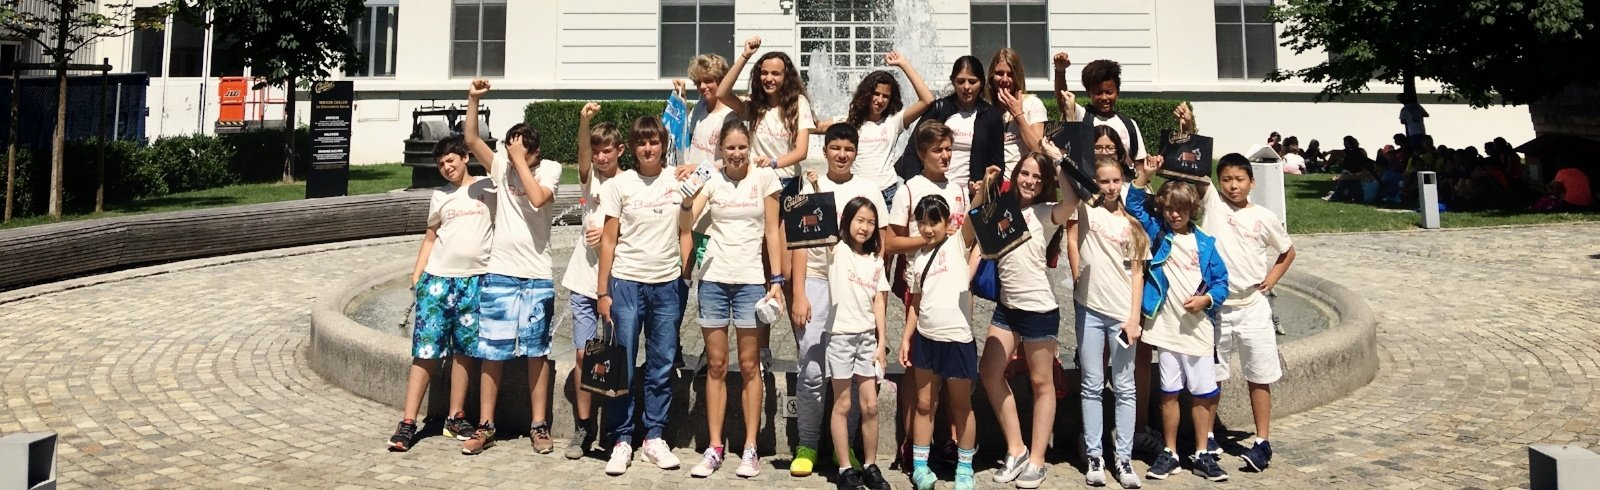 Swiss Boarding School children